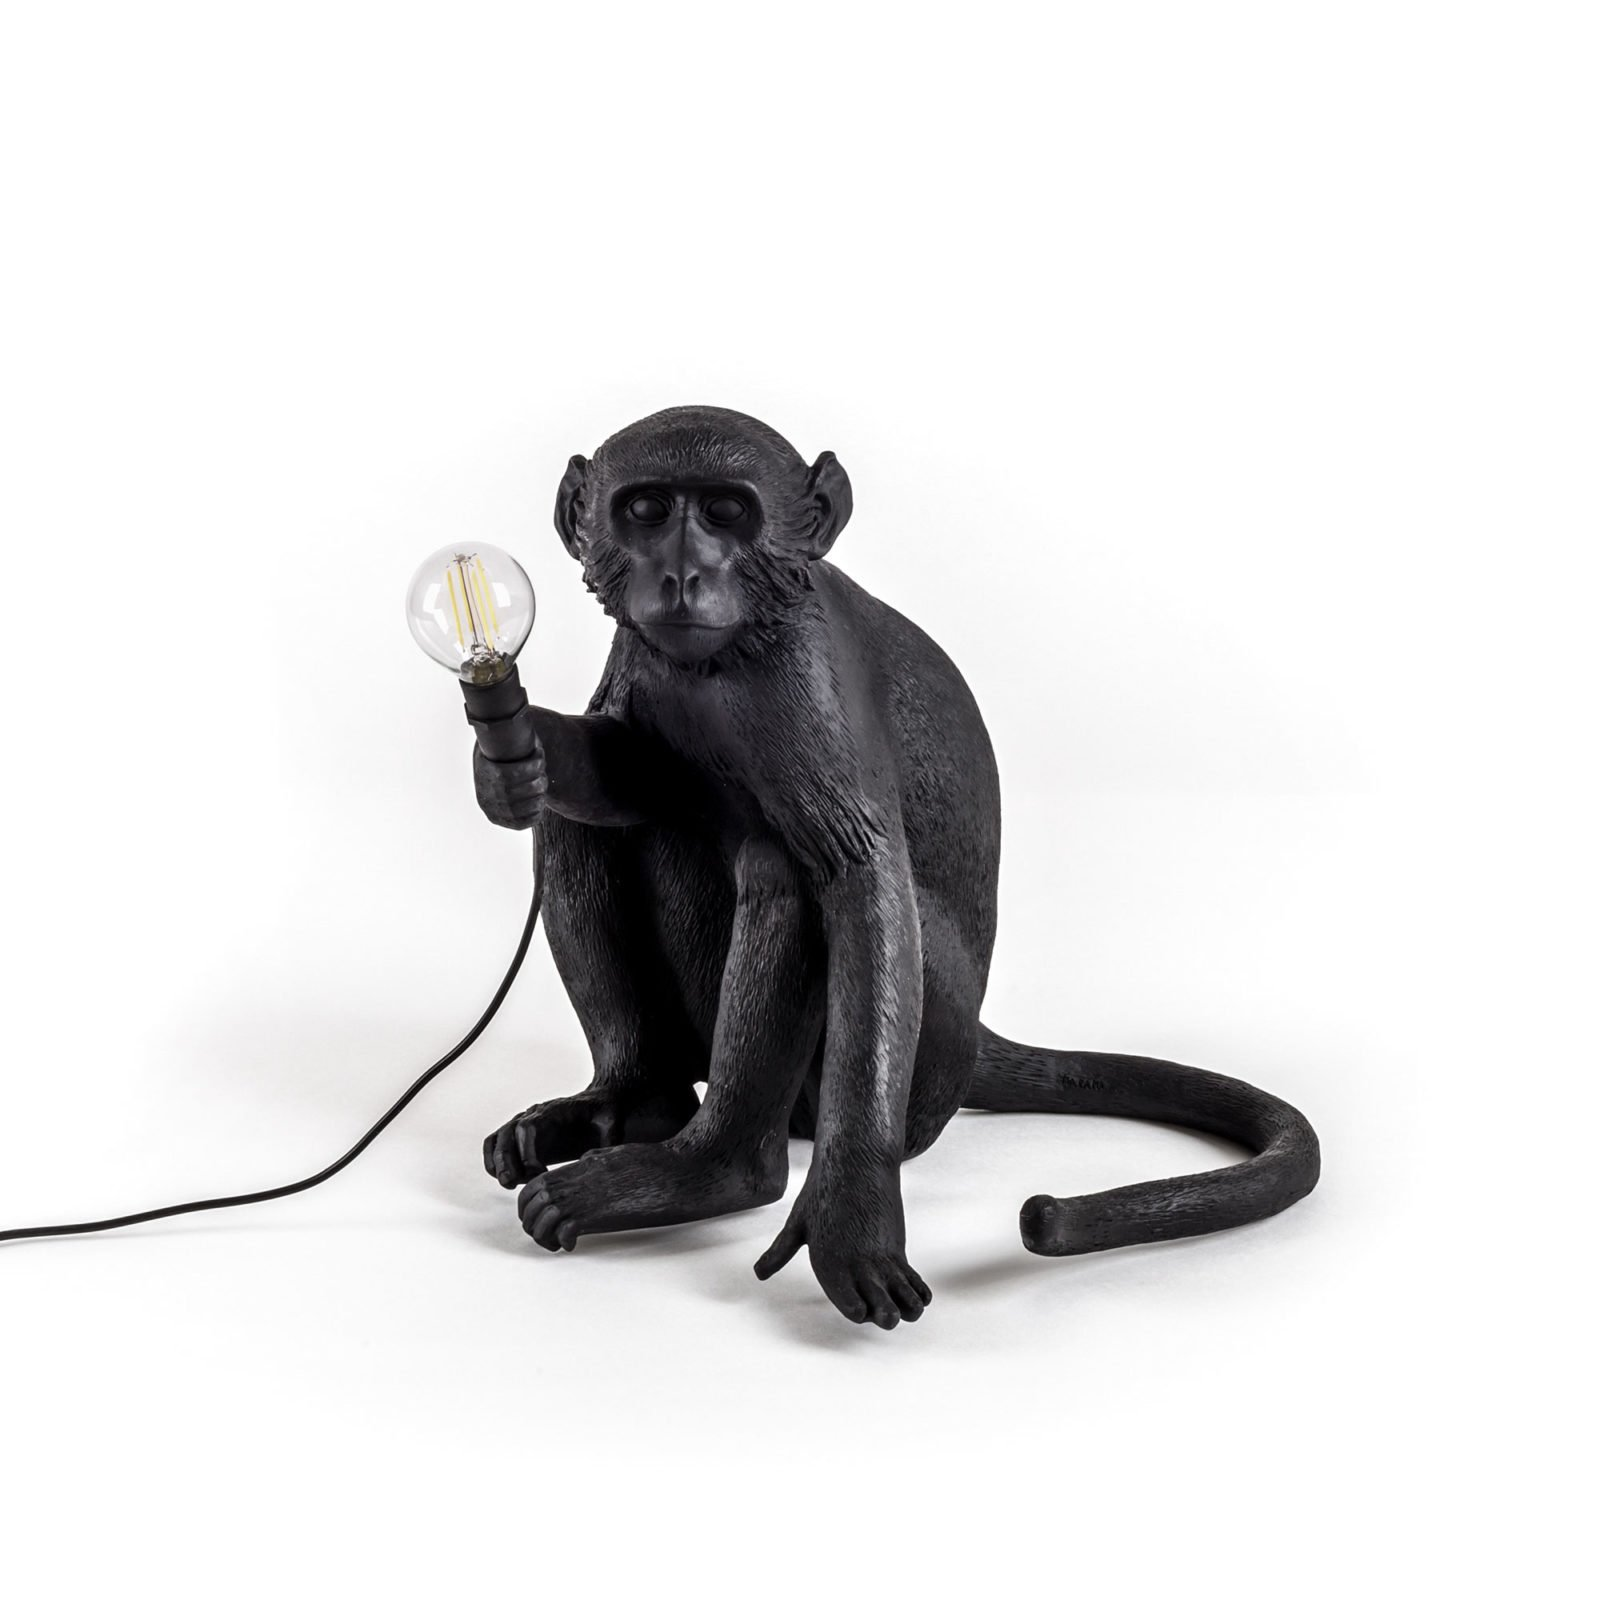 Seletti Outdoor Monkey Lamp, Sitting -31194